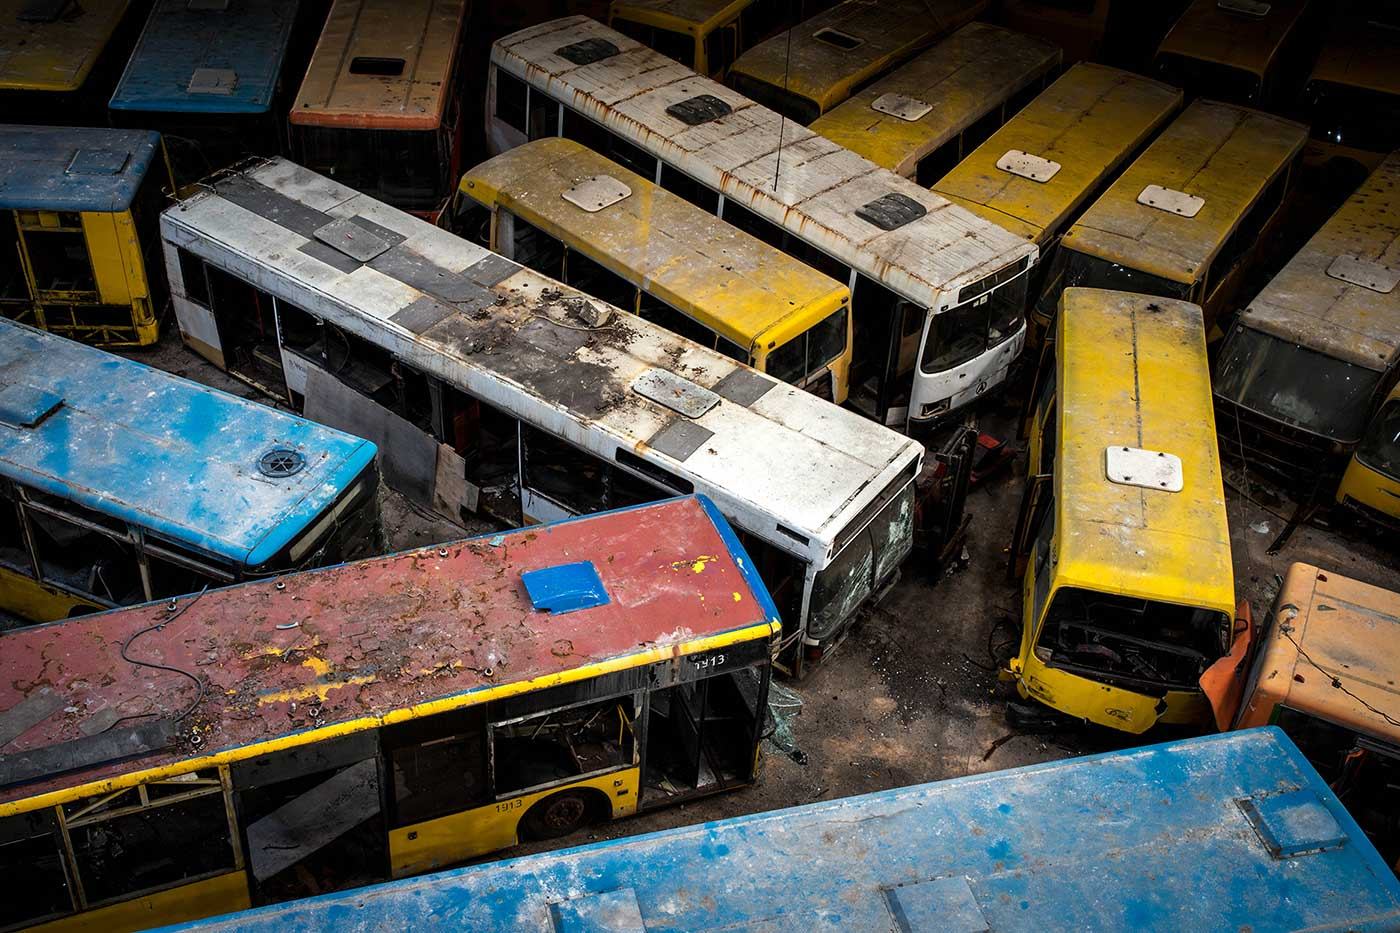 Since it was officially closed in 2015, almost 1,000 buses have been stored inside the abandoned building. Autobus Park №7: the abandoned bus depot in Kyiv, Ukraine.